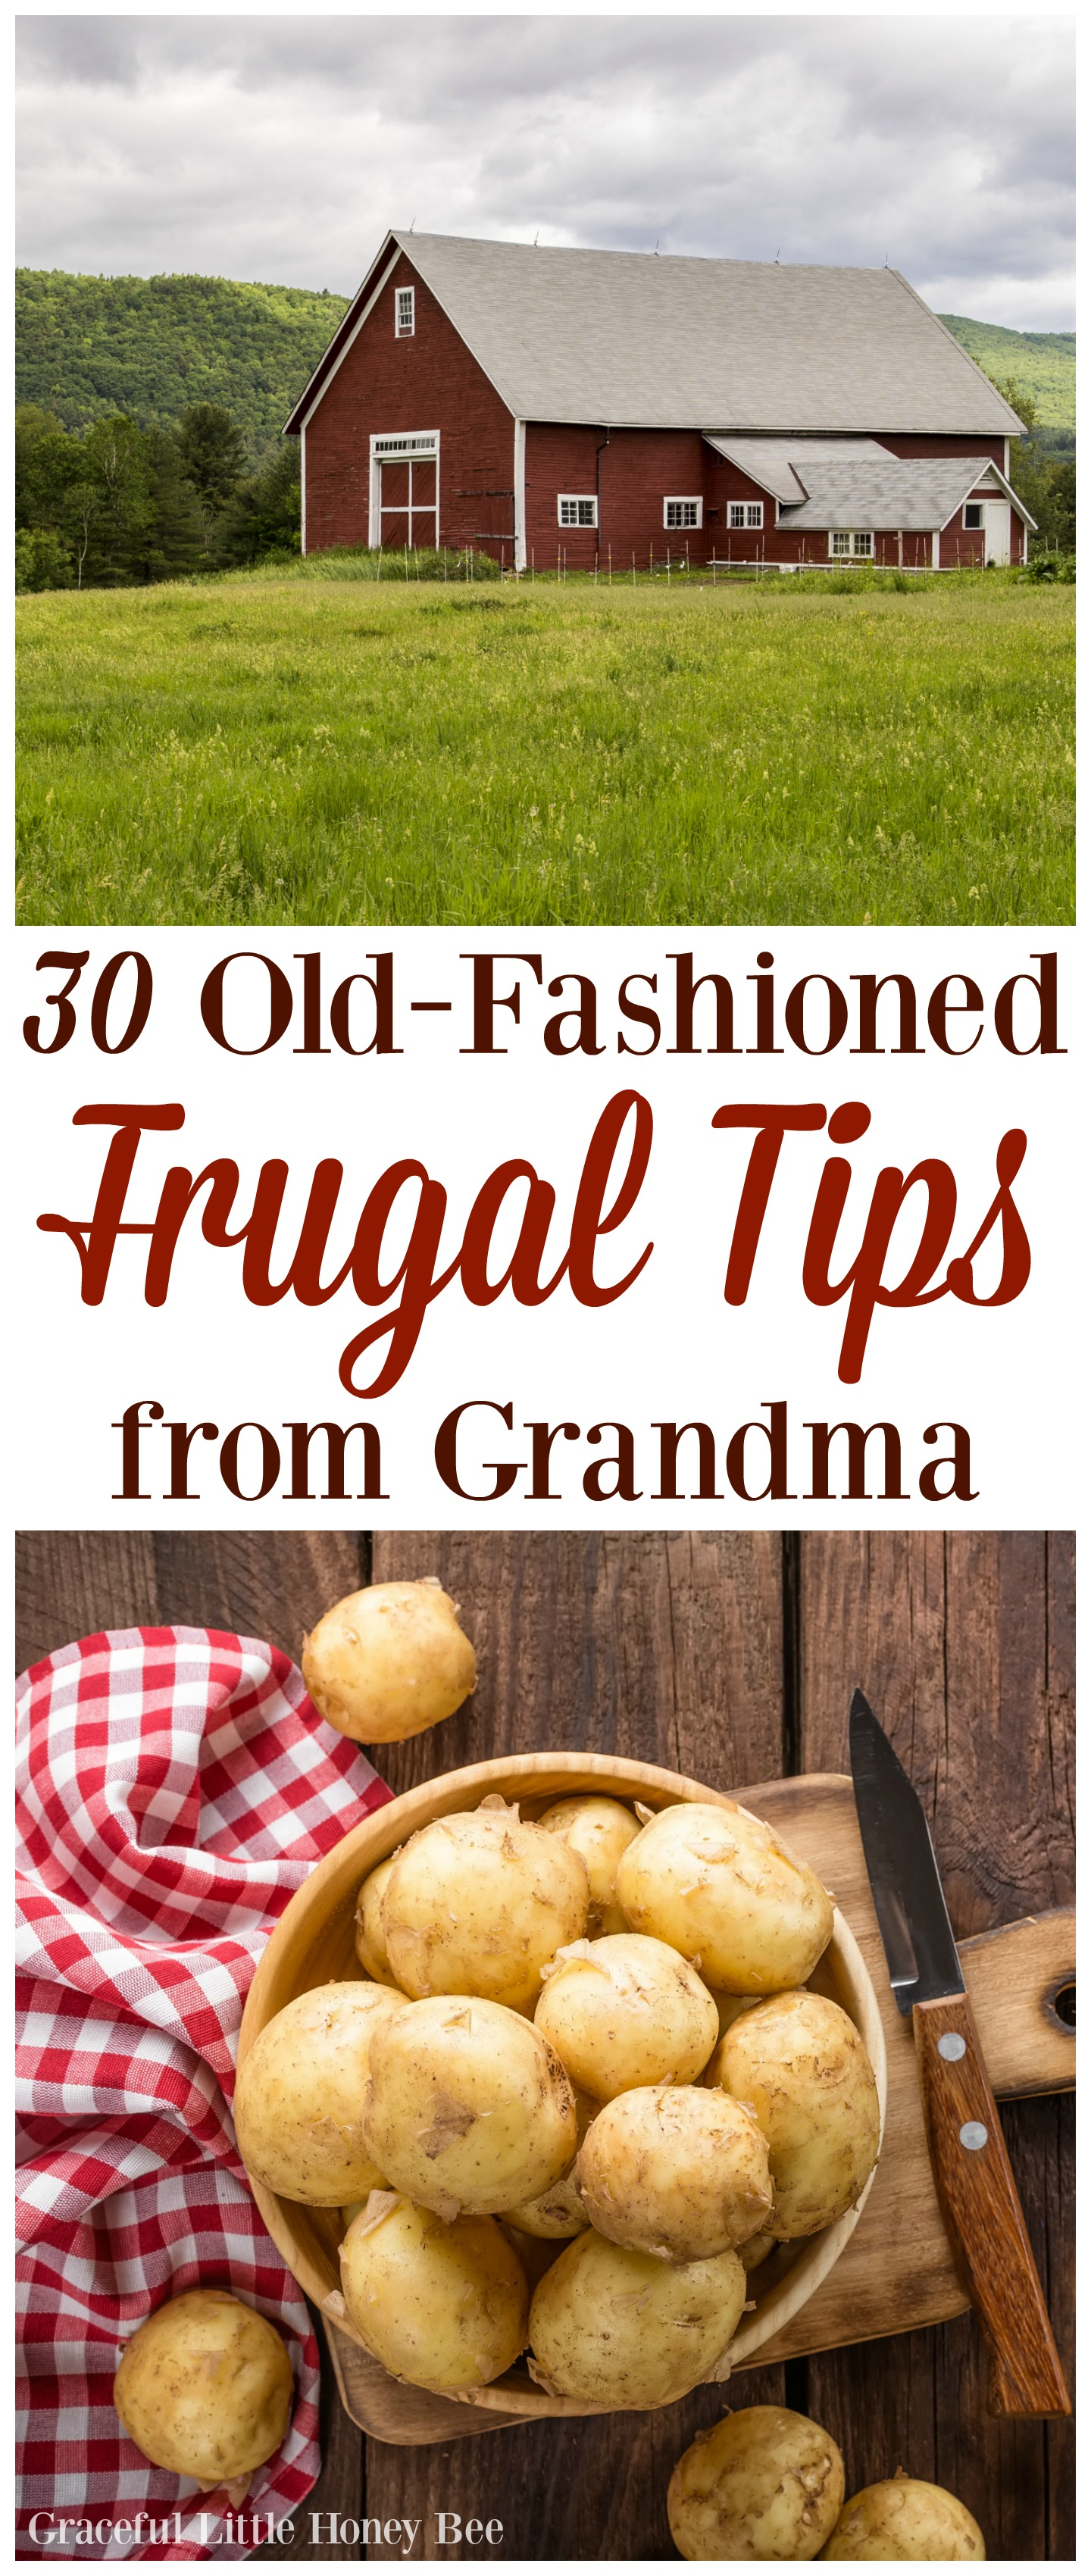 30 Old-Fashioned Frugal Tips From Grandma - Graceful Little